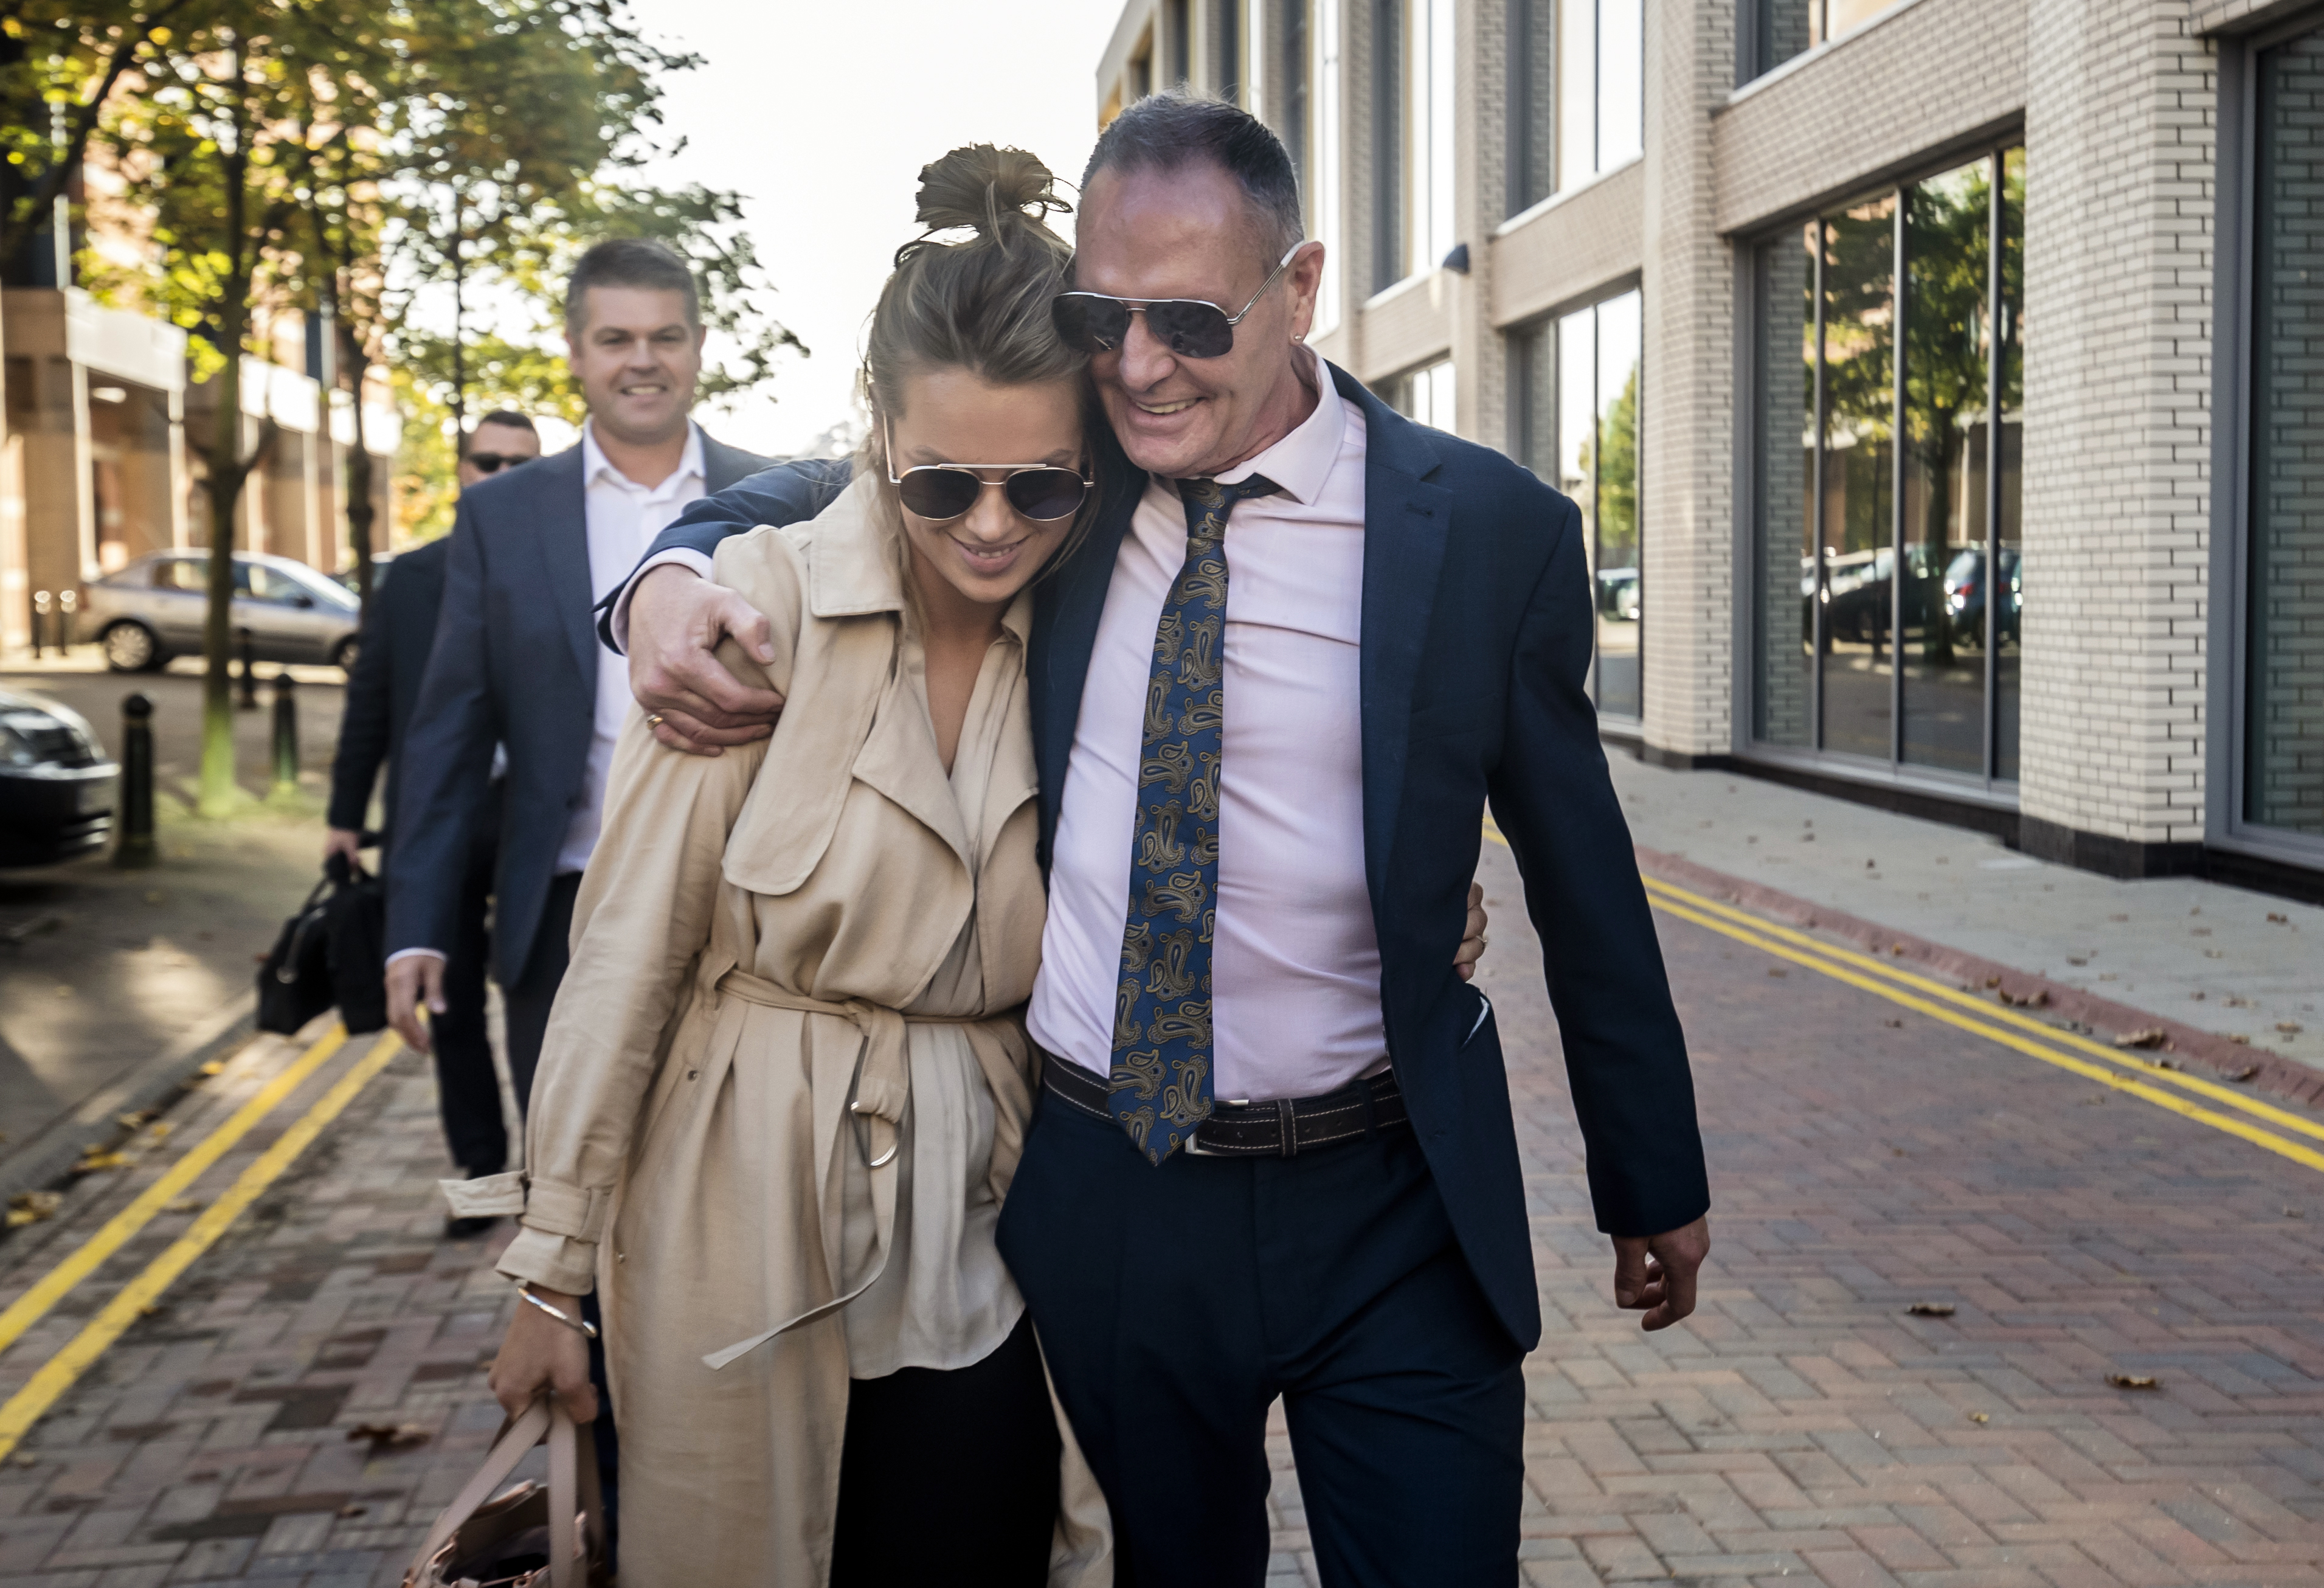 Former England footballer Paul Gascoigne with Katie Davies, Personal Manager for Paul Gascoigne M&N Management, leaving Teesside Crown Court, Middlesbrough, after he was cleared of all charges of sexually assaulting a woman on a train.